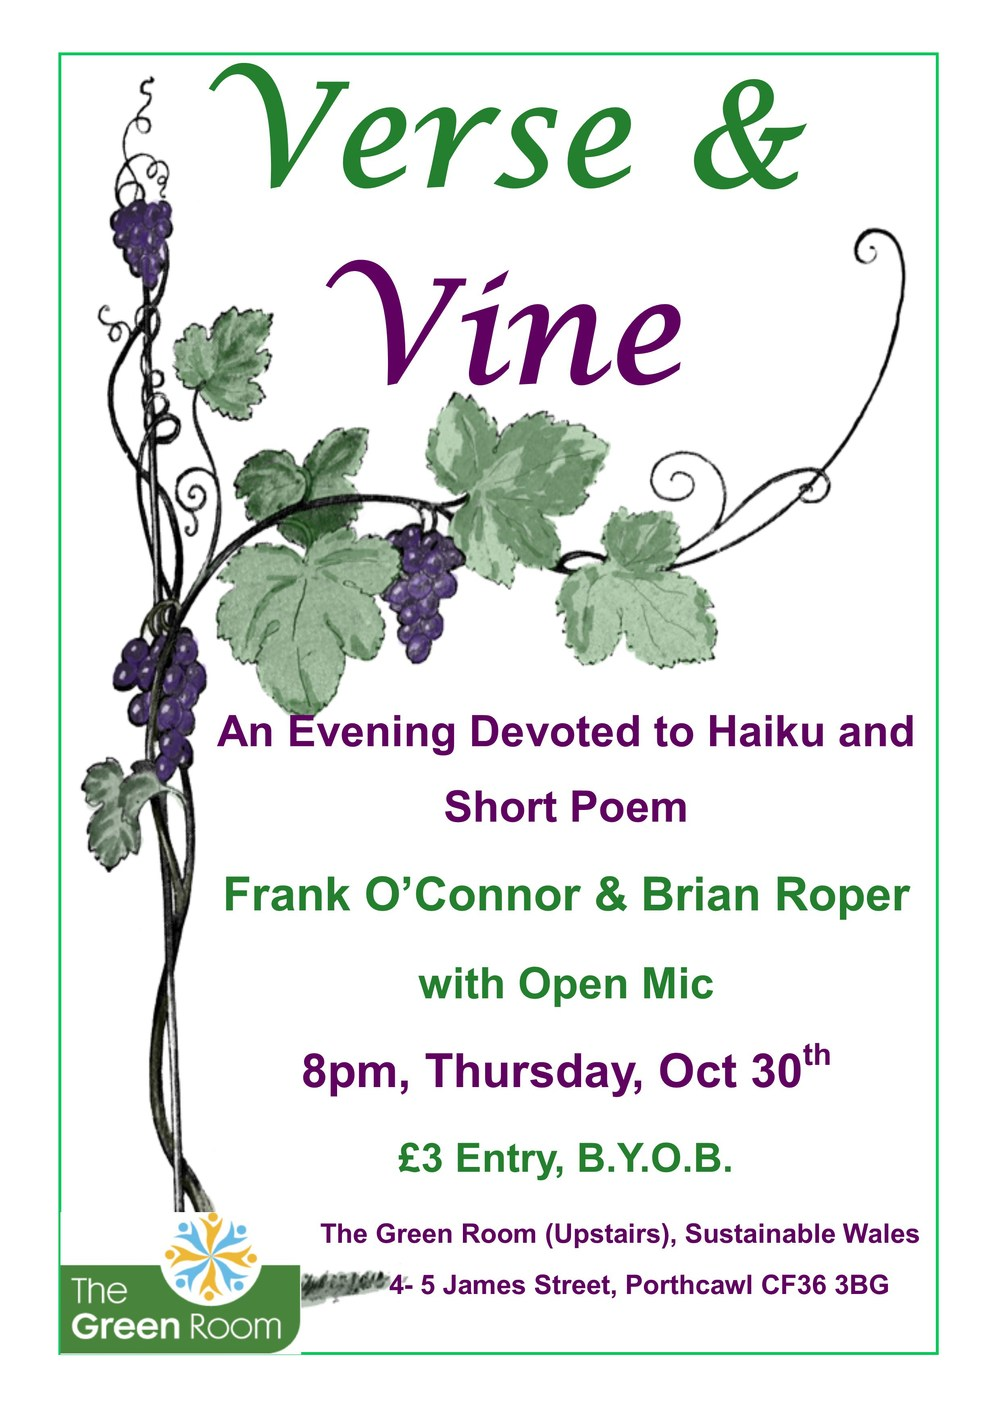 Verse & Vine 8pm, Thursday Oct 30th at the Green Room above SUSSED